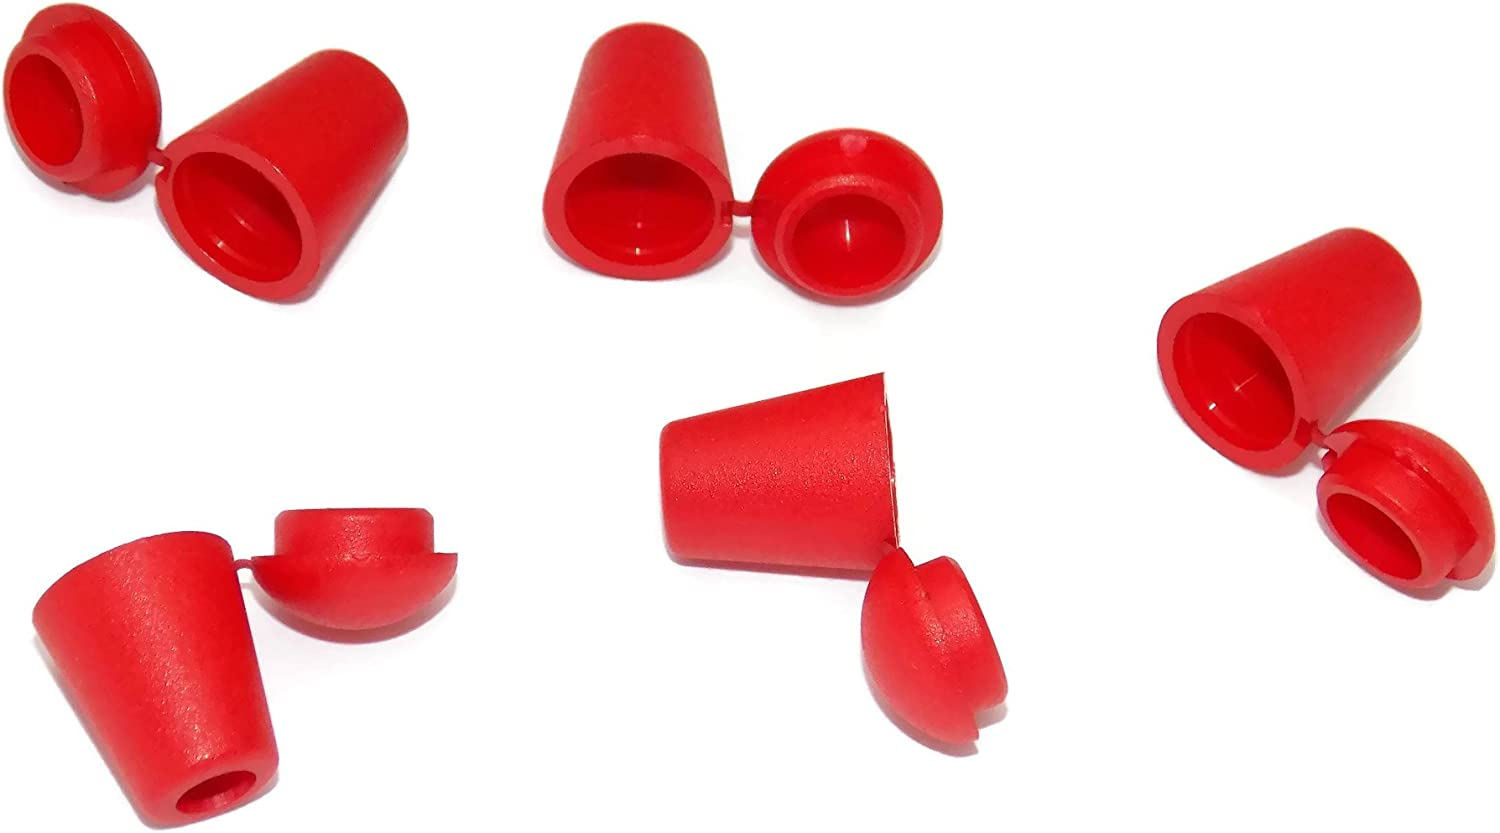 Midwest Cord Bell End Caps End Caps for 550 Paracord Craft Supply TM Brand Plastic Paracute Cord Accessories